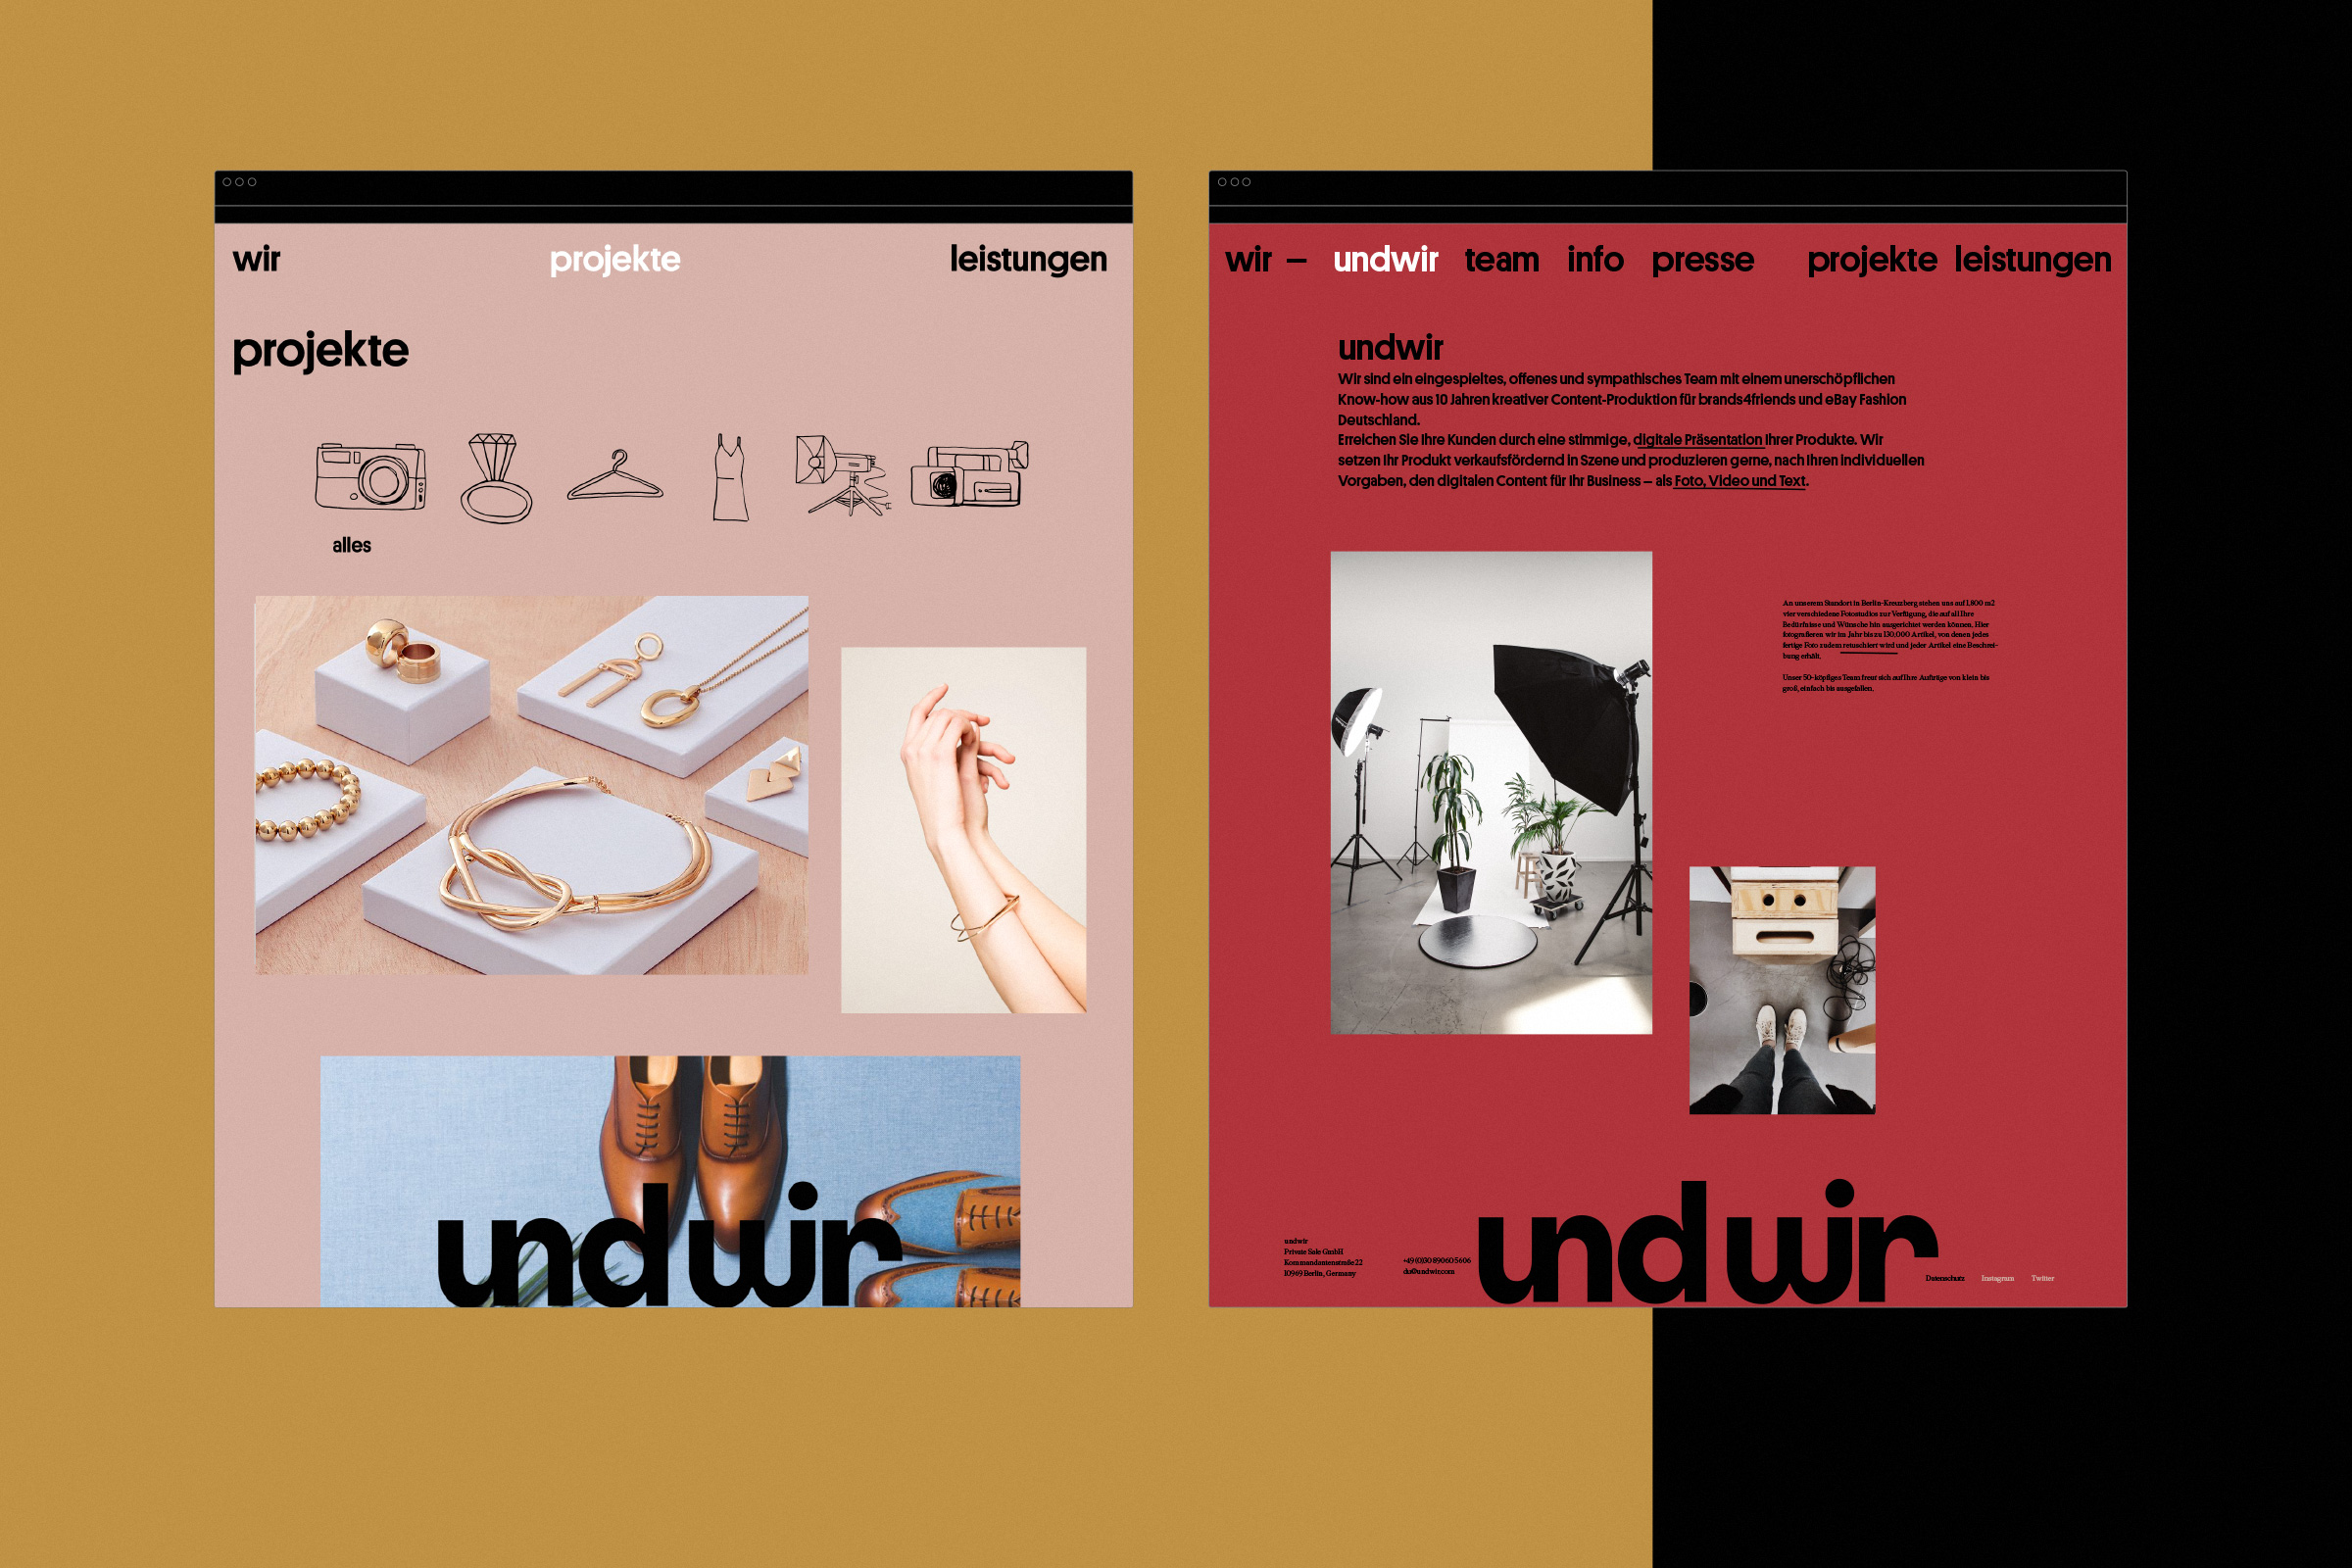 undwir, illustration, produktfotos, text